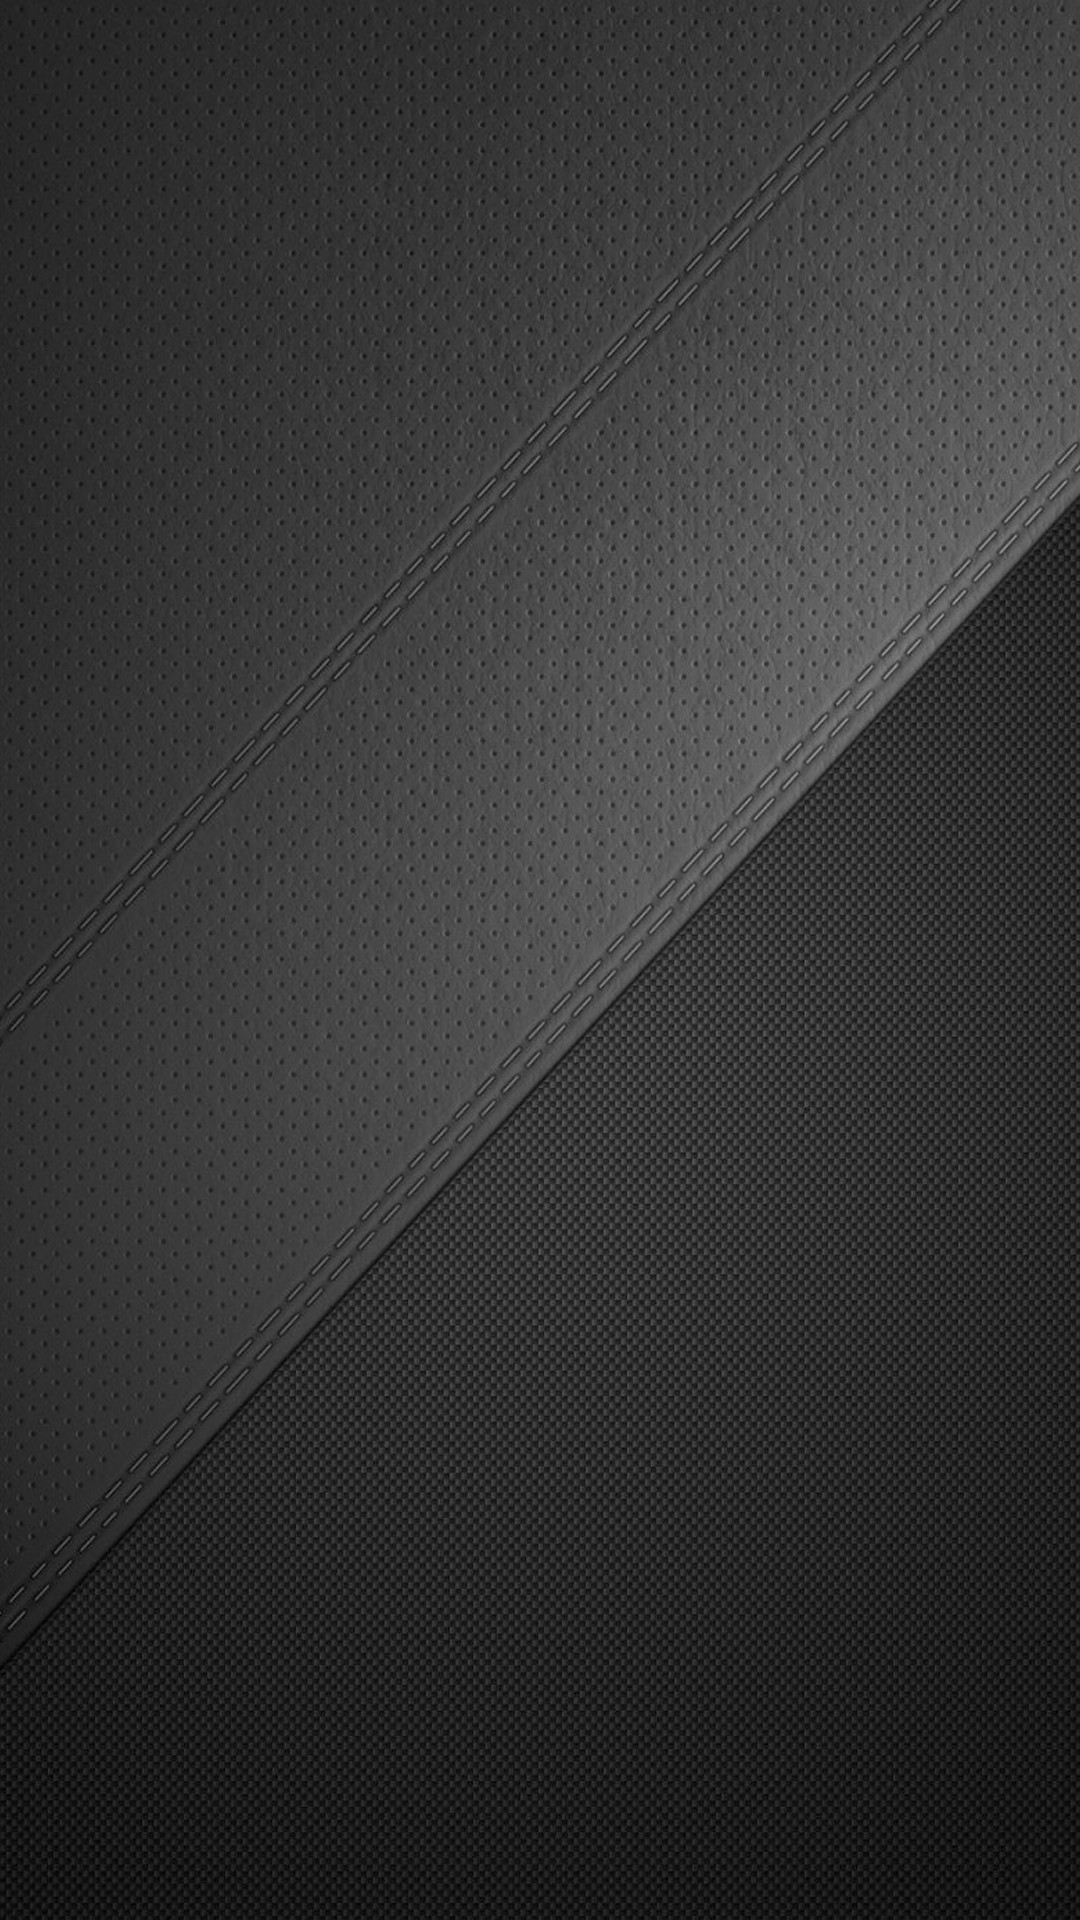 1080x1920 Leather htc one wallpaper